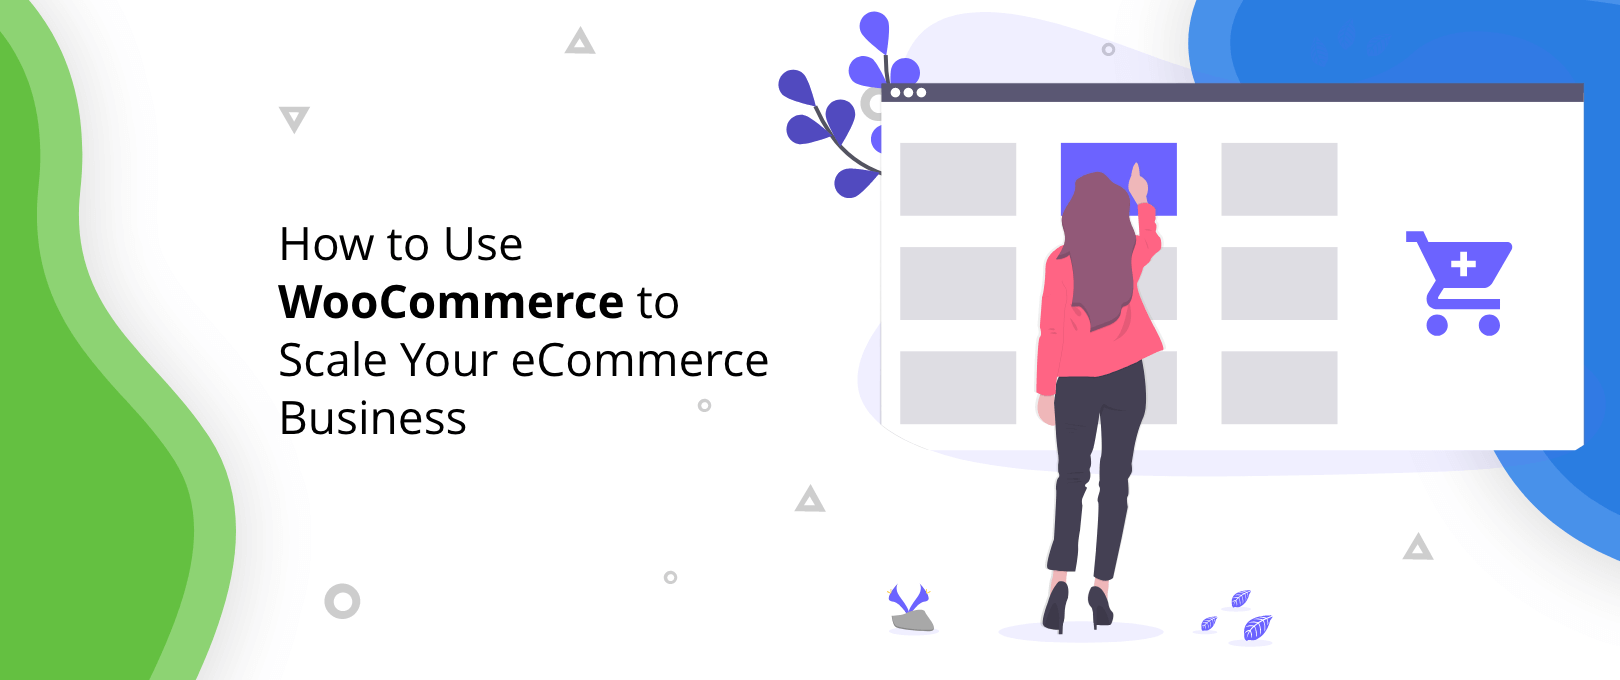 How to Use WooCommerce to Scale Your eCommerce Business